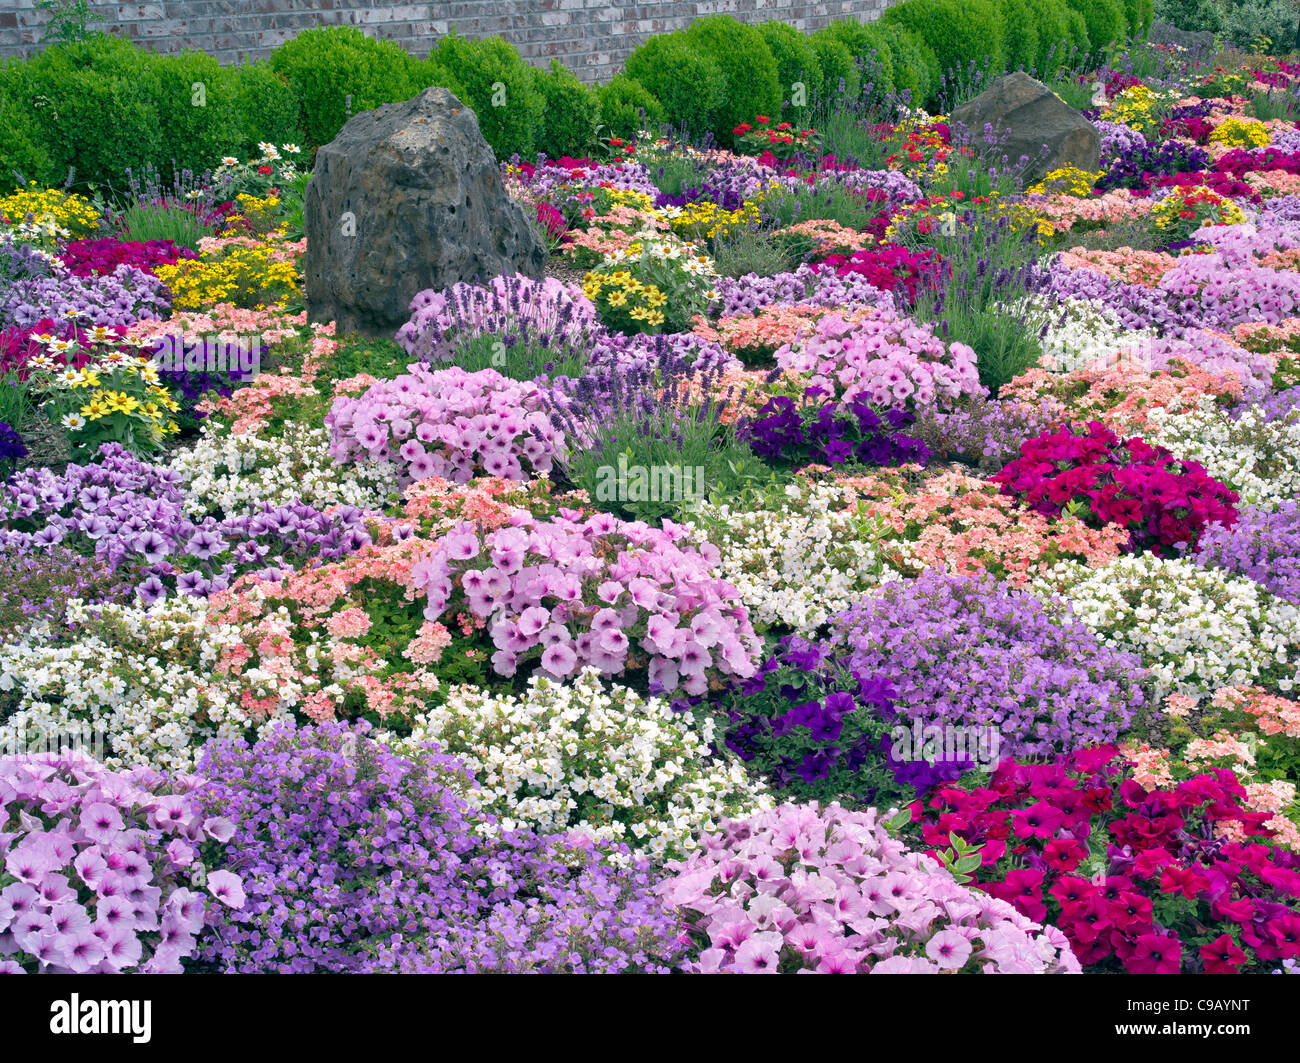 Mixed flowers in landscaping at Al's Nursery, Oregon - Stock Image